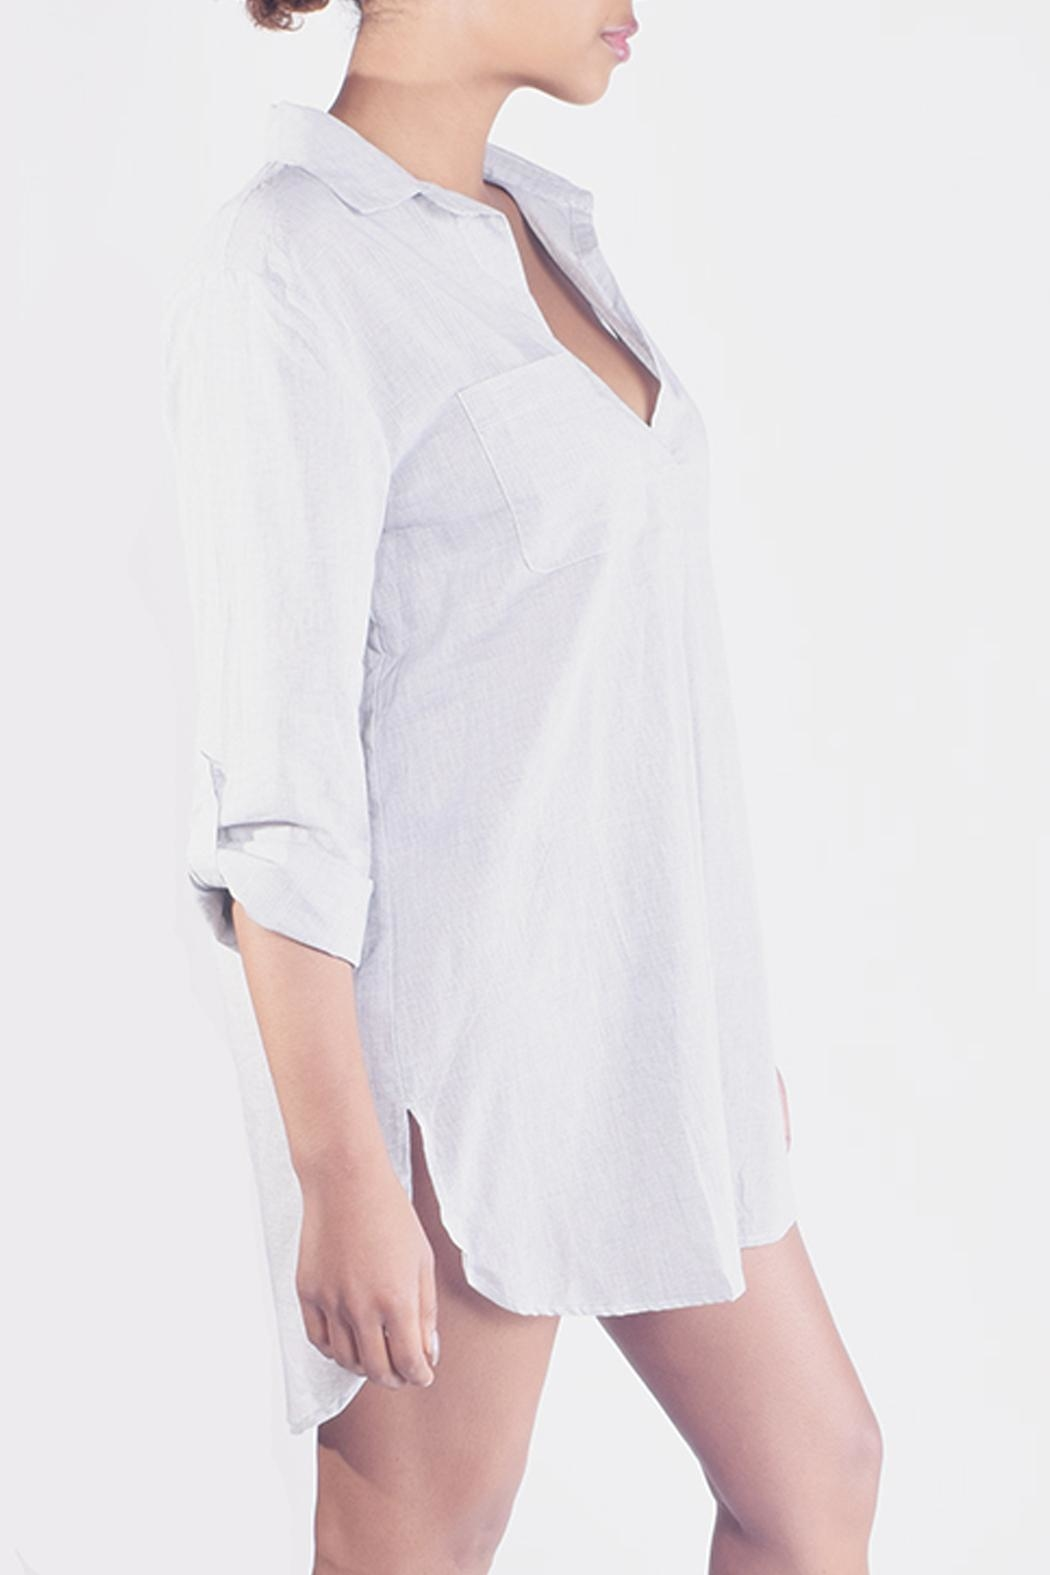 En Creme Striped-Collared Boyfriend Shirt - Side Cropped Image